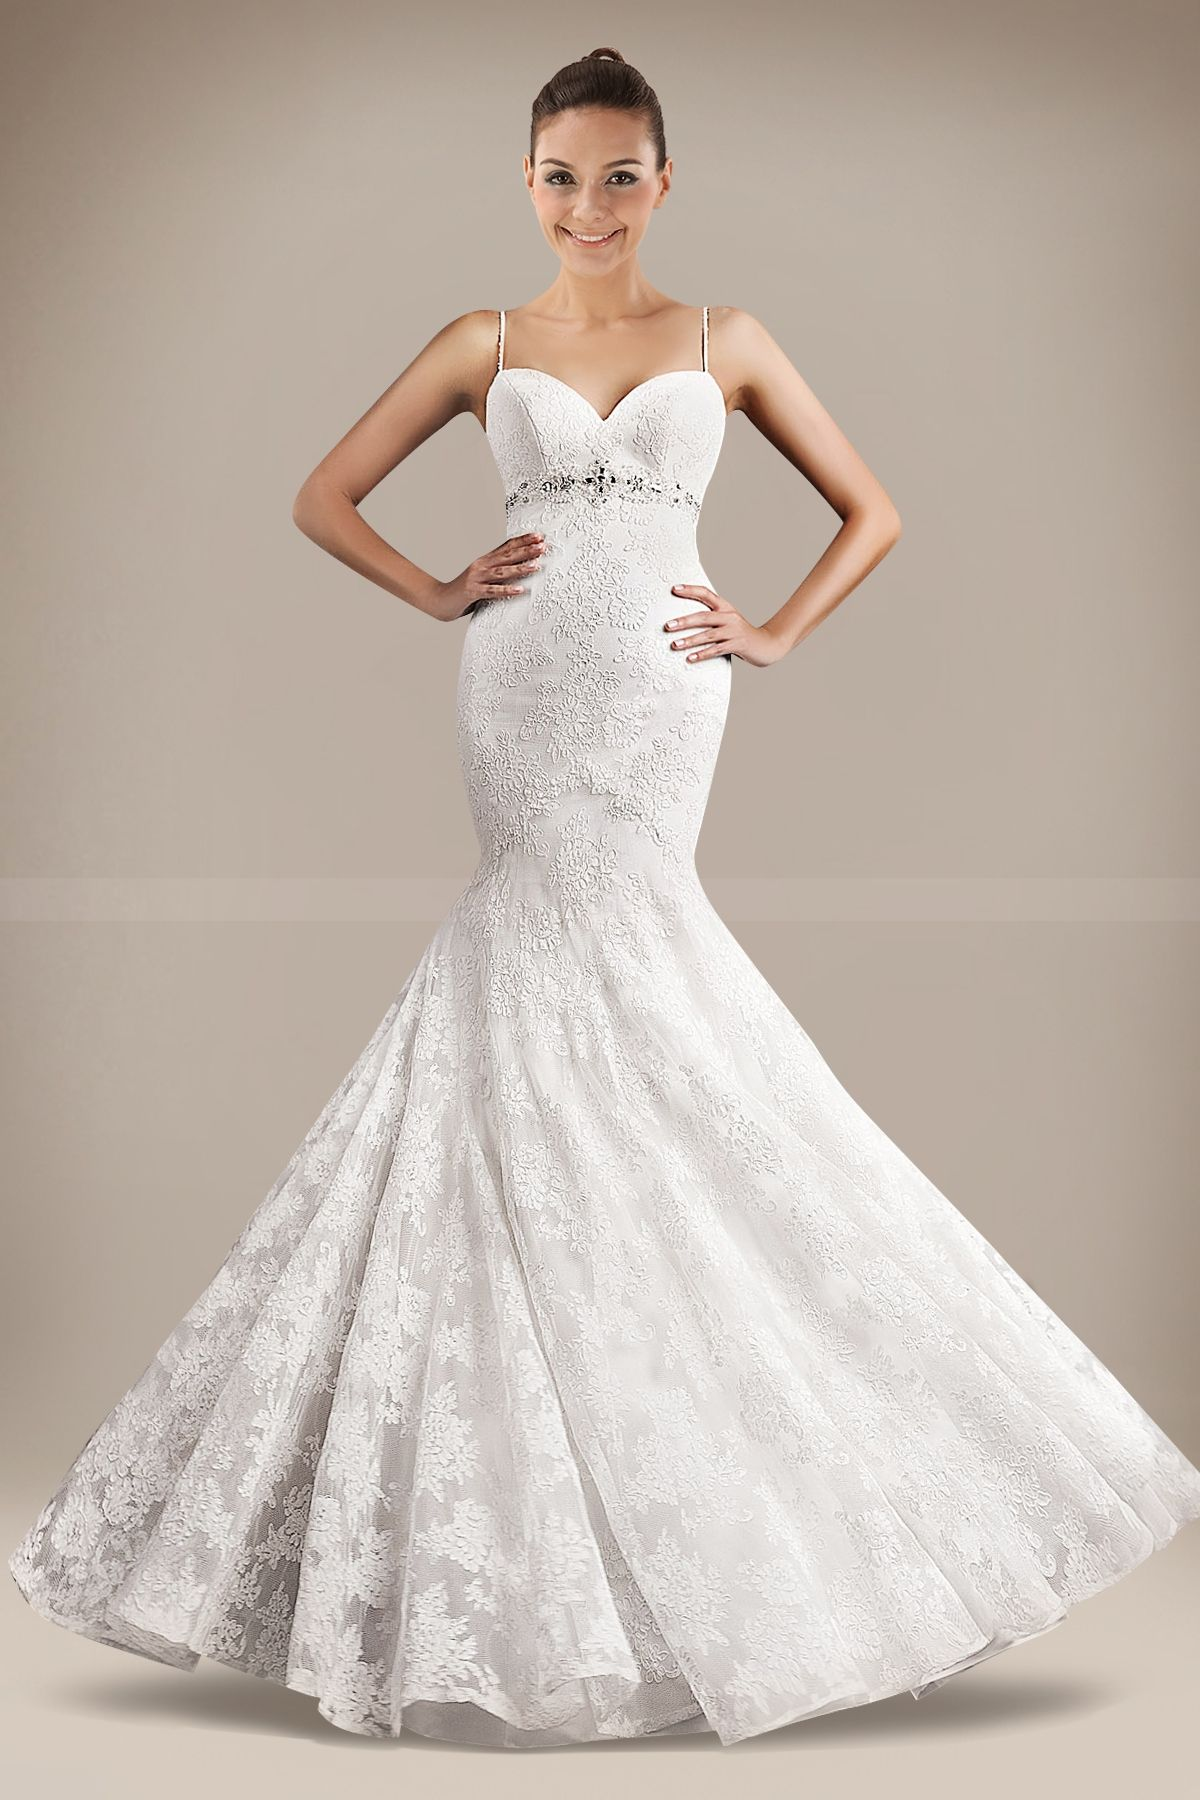 Wedding dress with bow on back  Love this  my own wedding  Pinterest  Mermaid Mermaid silhouette